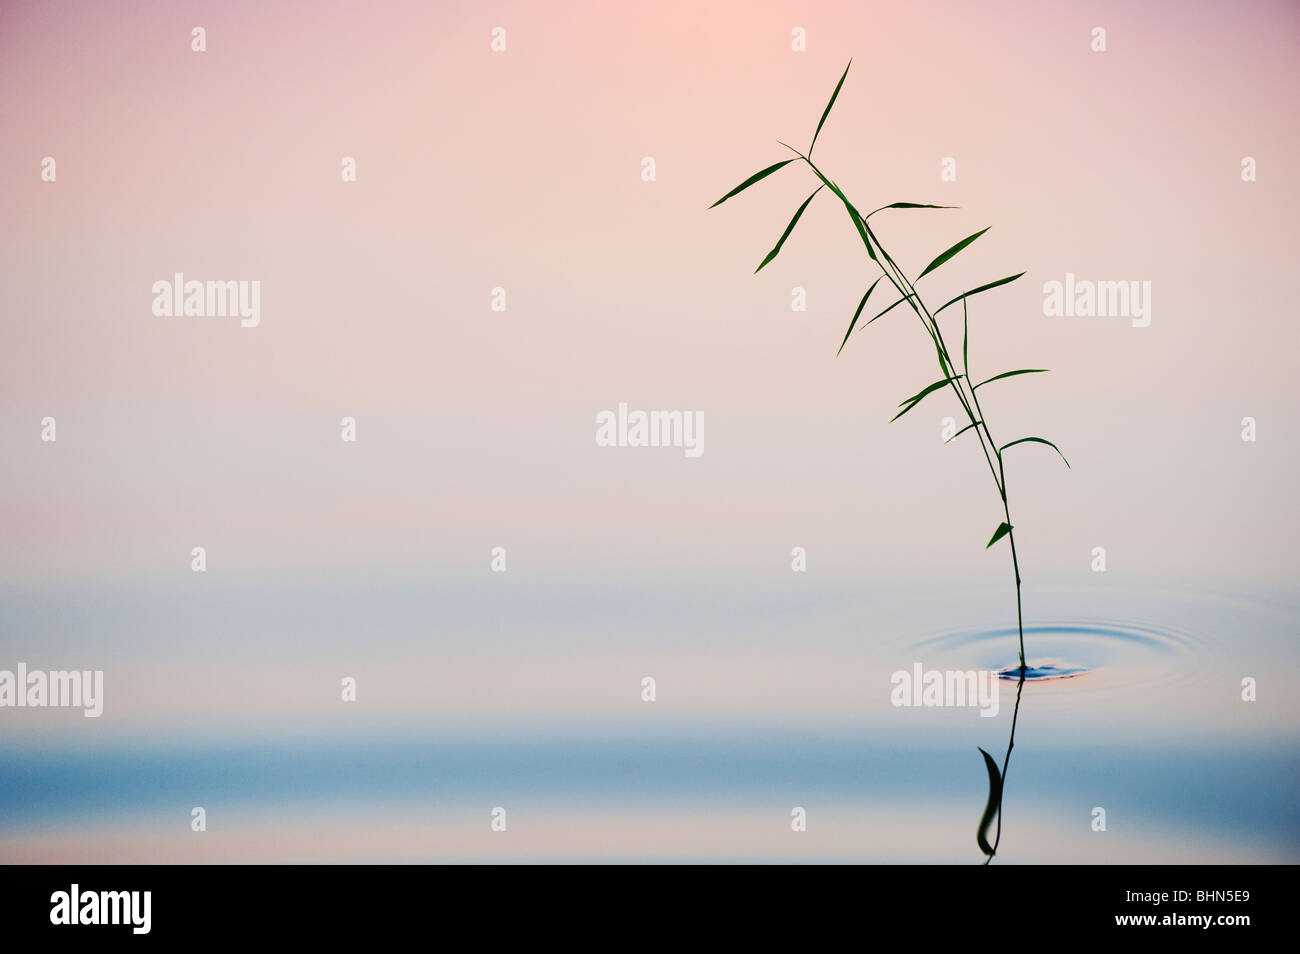 Bamboo grass reflecting in a still pool at dawn in india - Stock Image